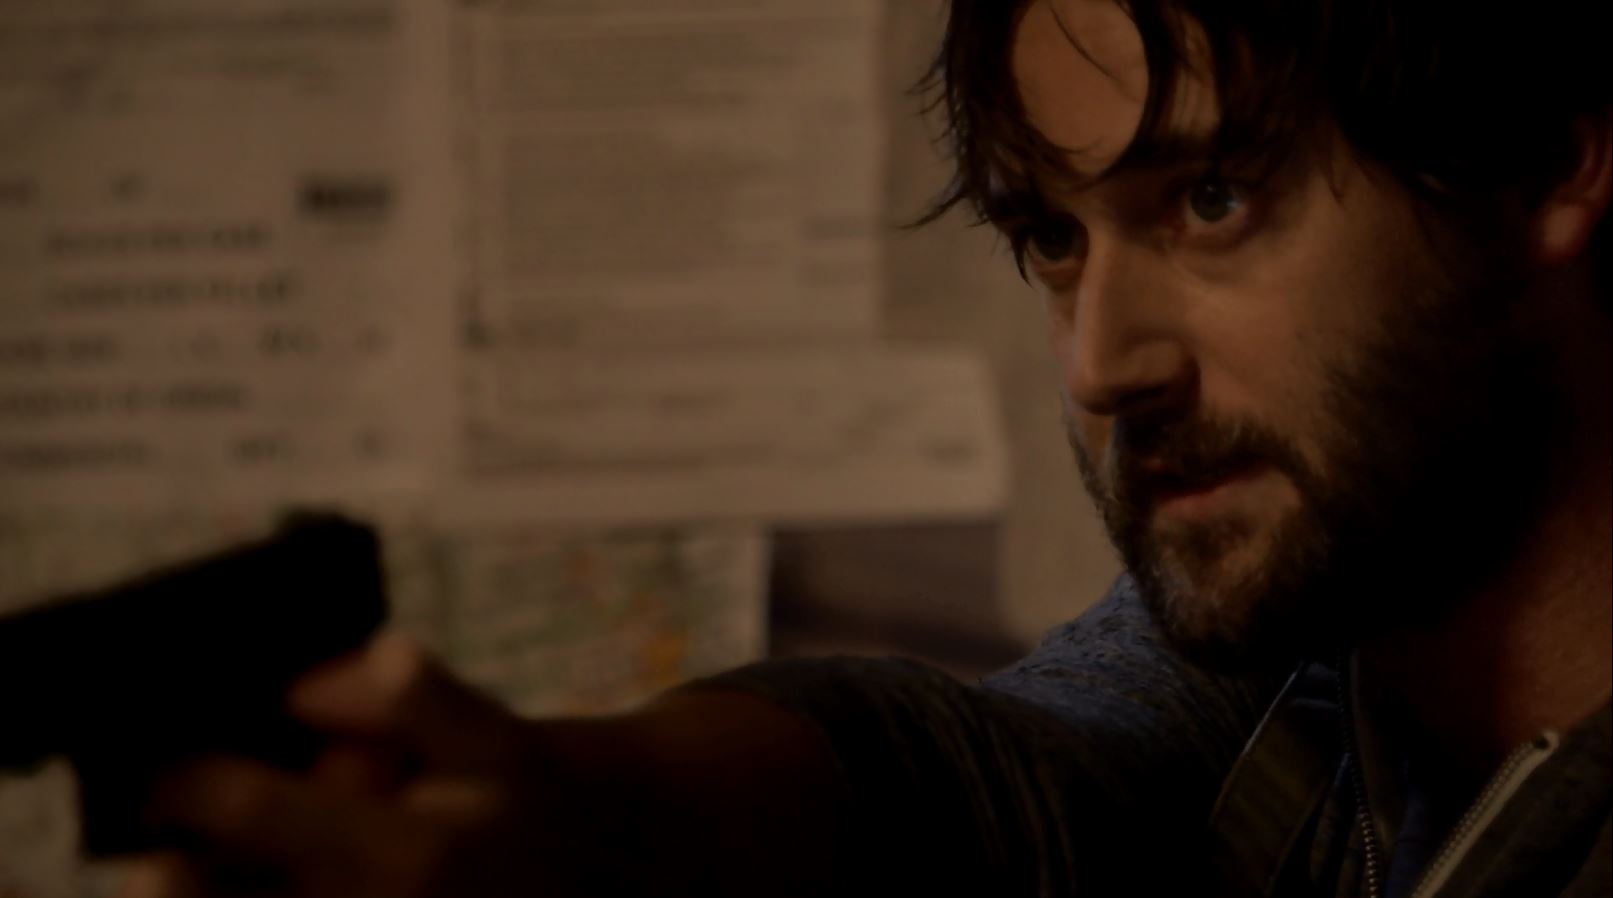 Ryan Eggold as Tom Keen - The Blacklist S2Ep3 Dr. James Covington (No. 89) Review